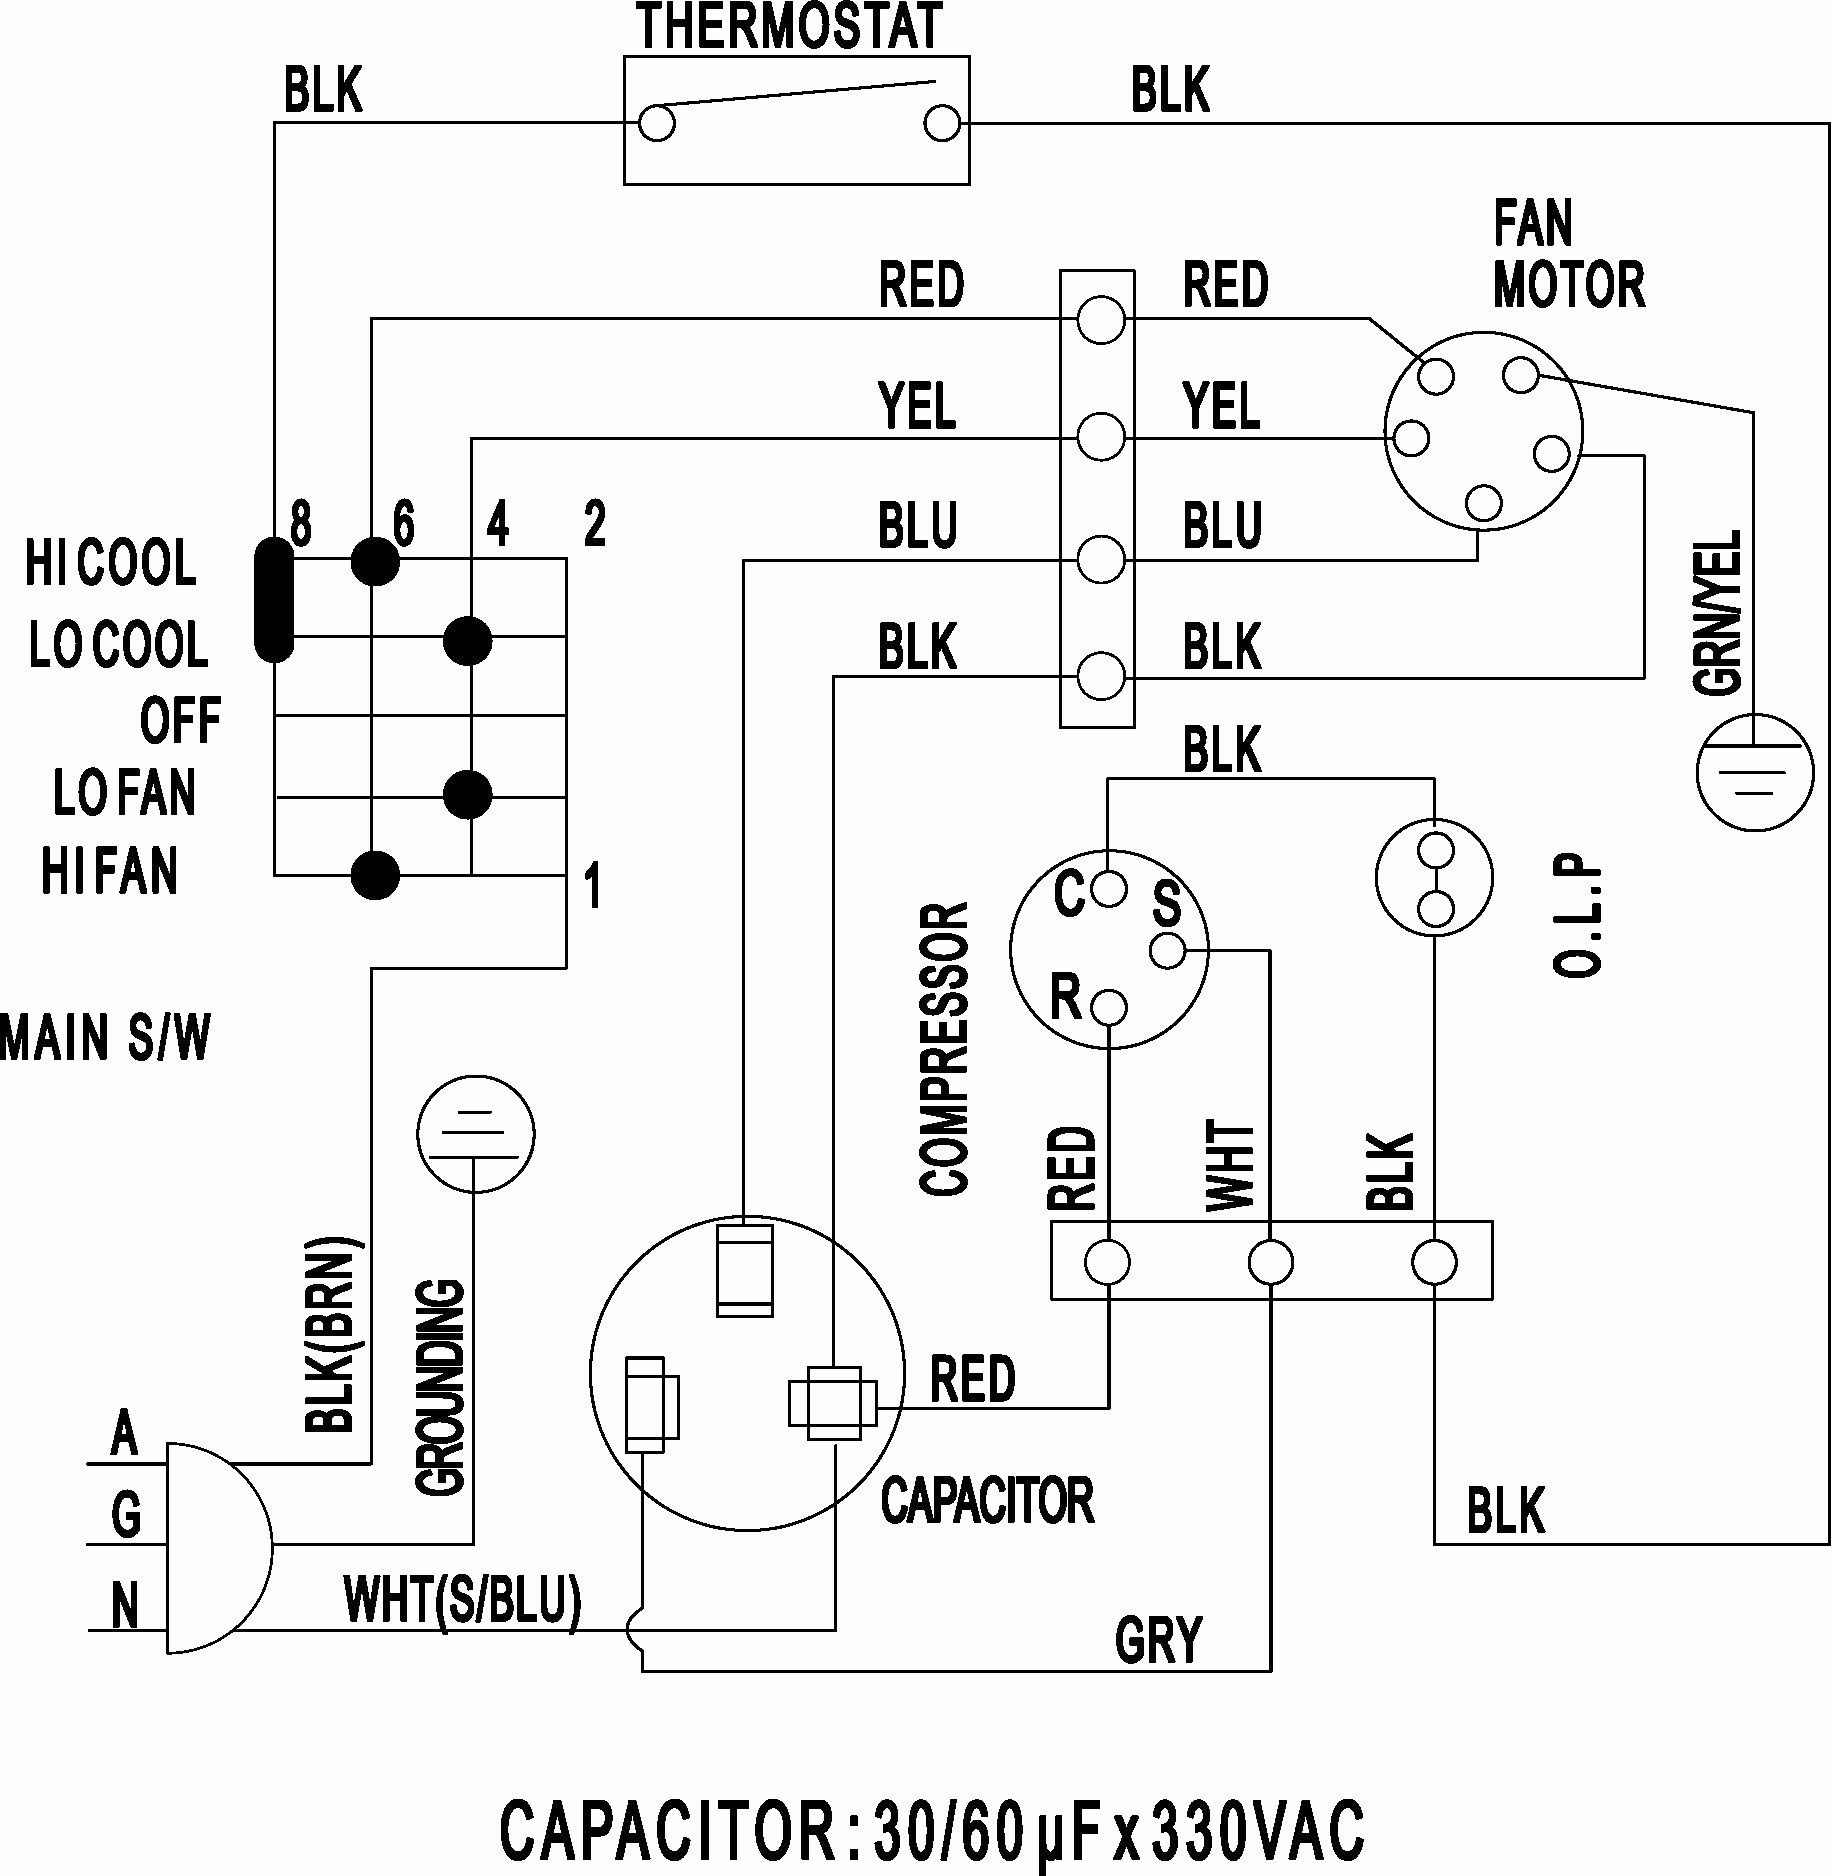 hight resolution of carrier ac wiring diagram wiring diagram review wiring diagram for carrier central air conditioner carrier unit